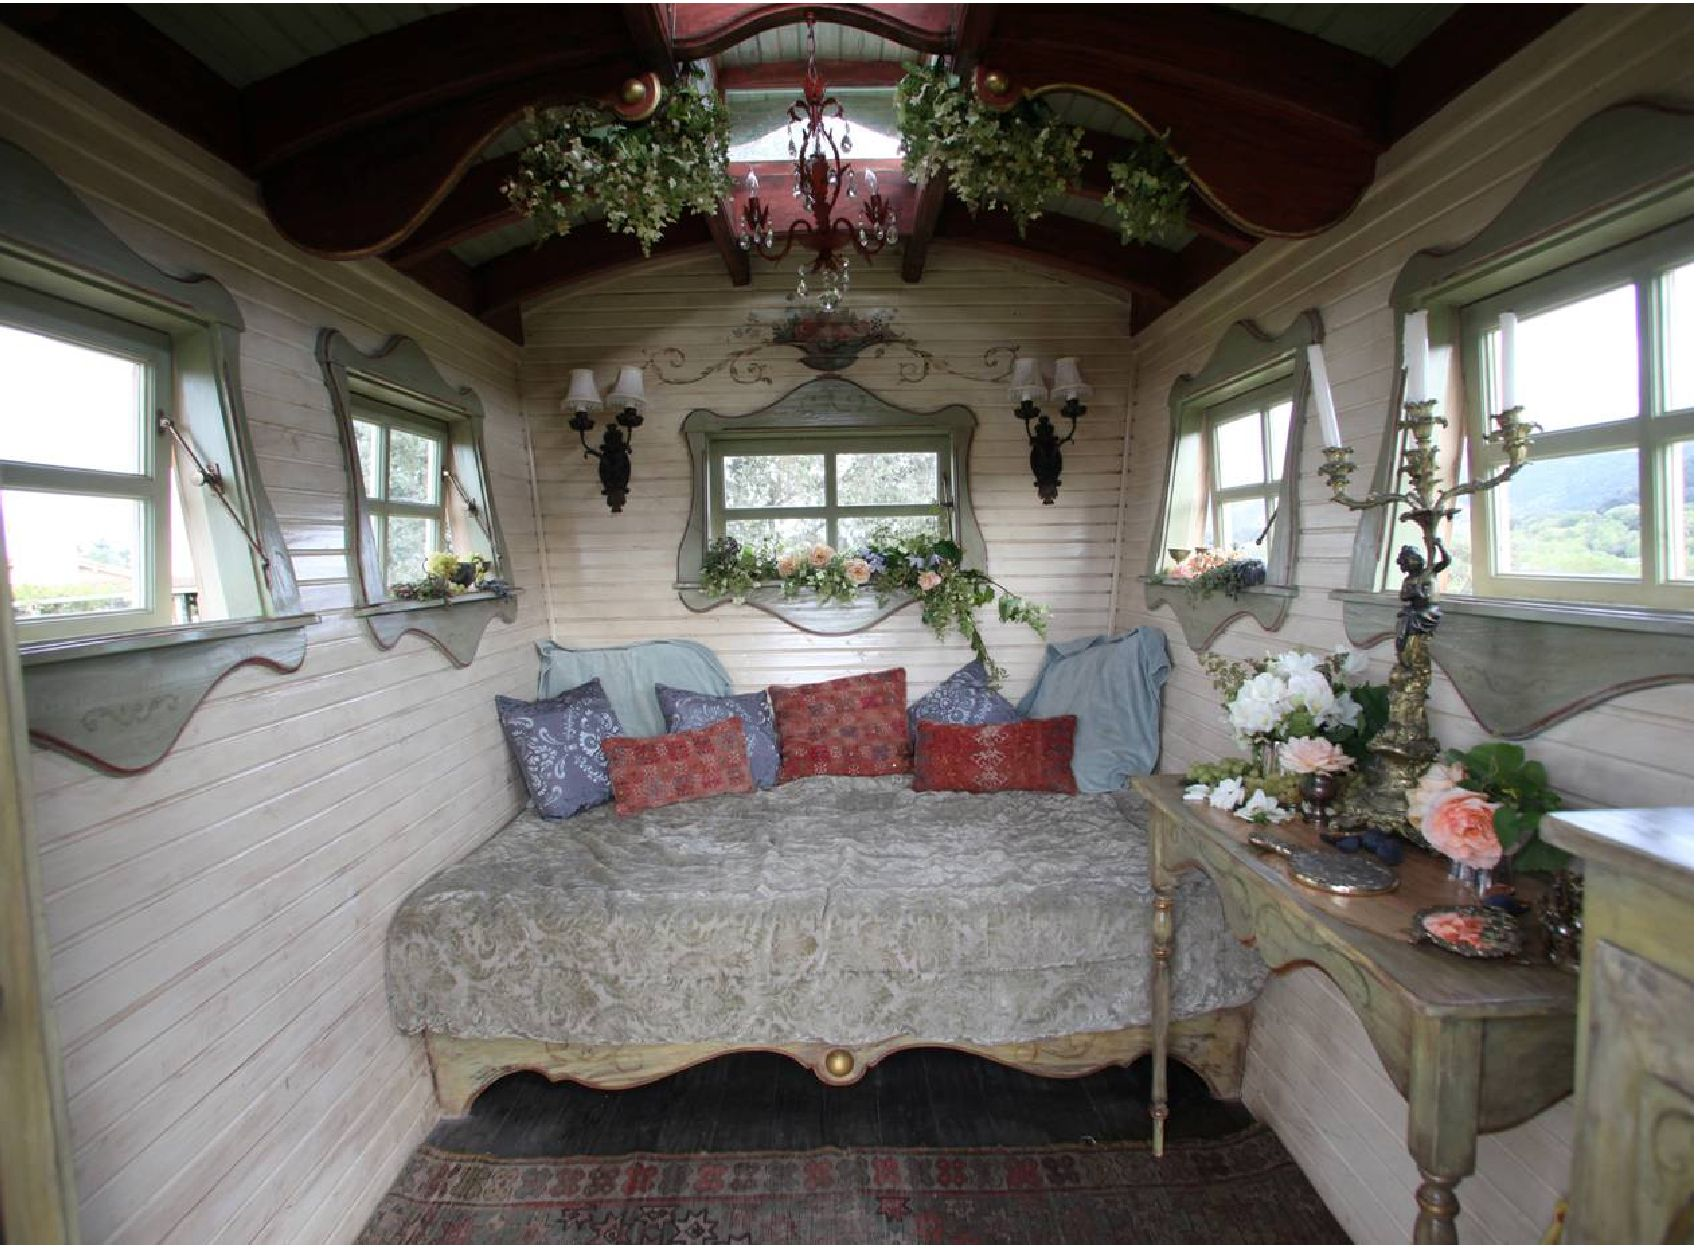 Gypsy Caravan Interior Photo Getting Ready For The Cec S Gypsy Caravan Green Gala Adesso